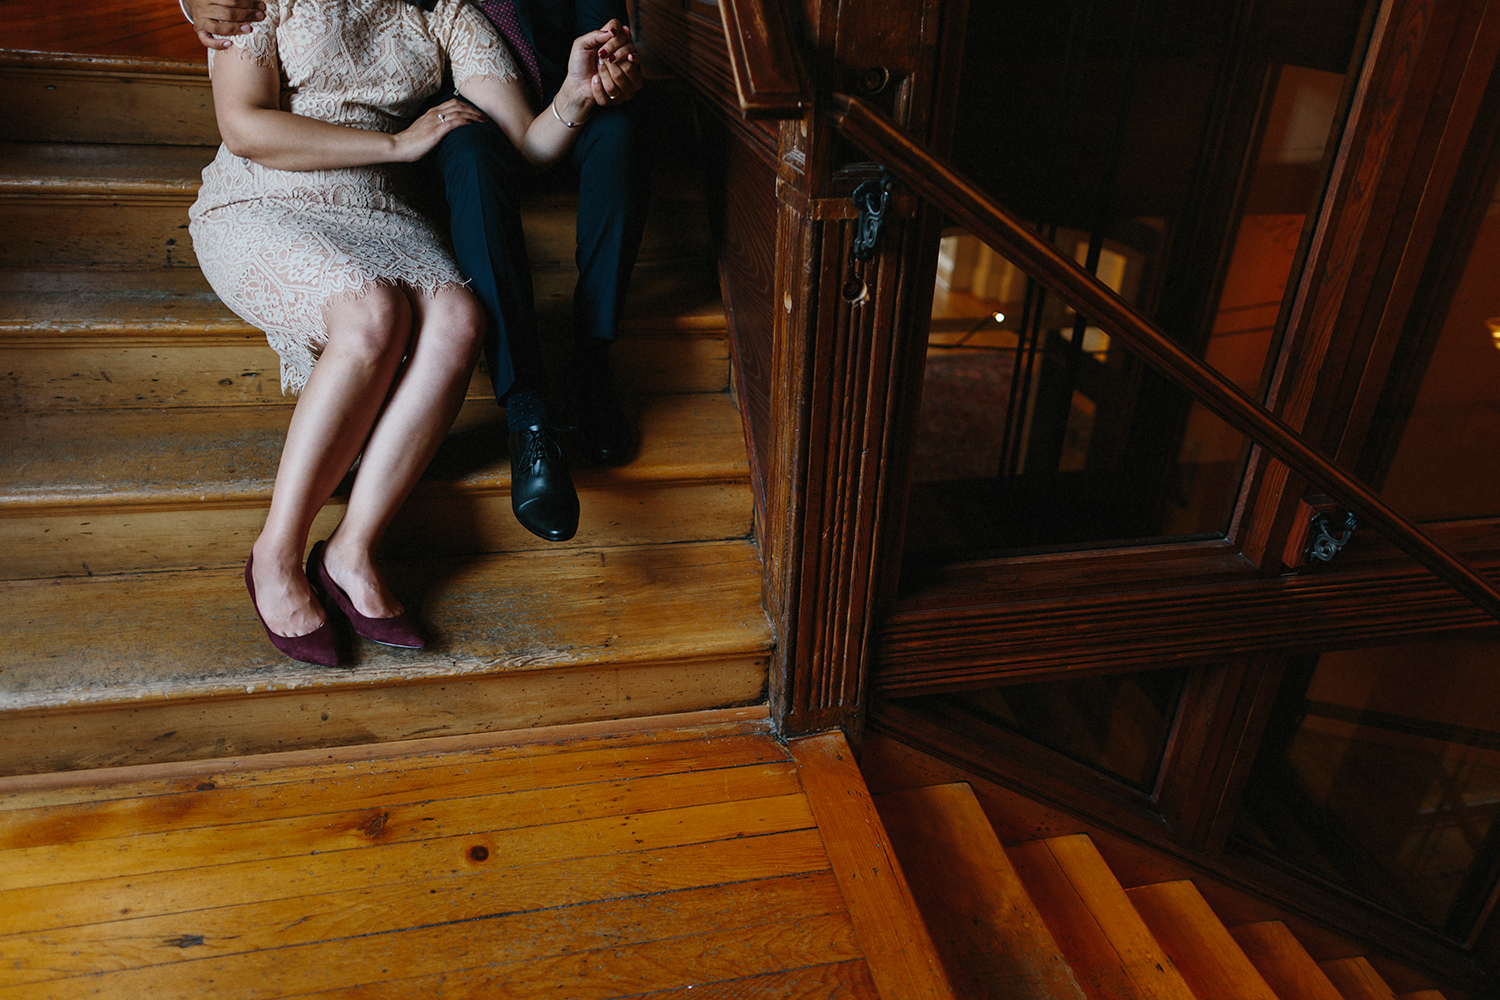 Best-Wedding-Photographers-in-Toronto-Downtown-Urban-Gladstone-Hotel-Venue-Inspiration-Top-Venues-in-Toronto-boutique-hotel-candid-documentary-brunch-wedding-couples-portraits-on-stairs-romantic-details.jpg